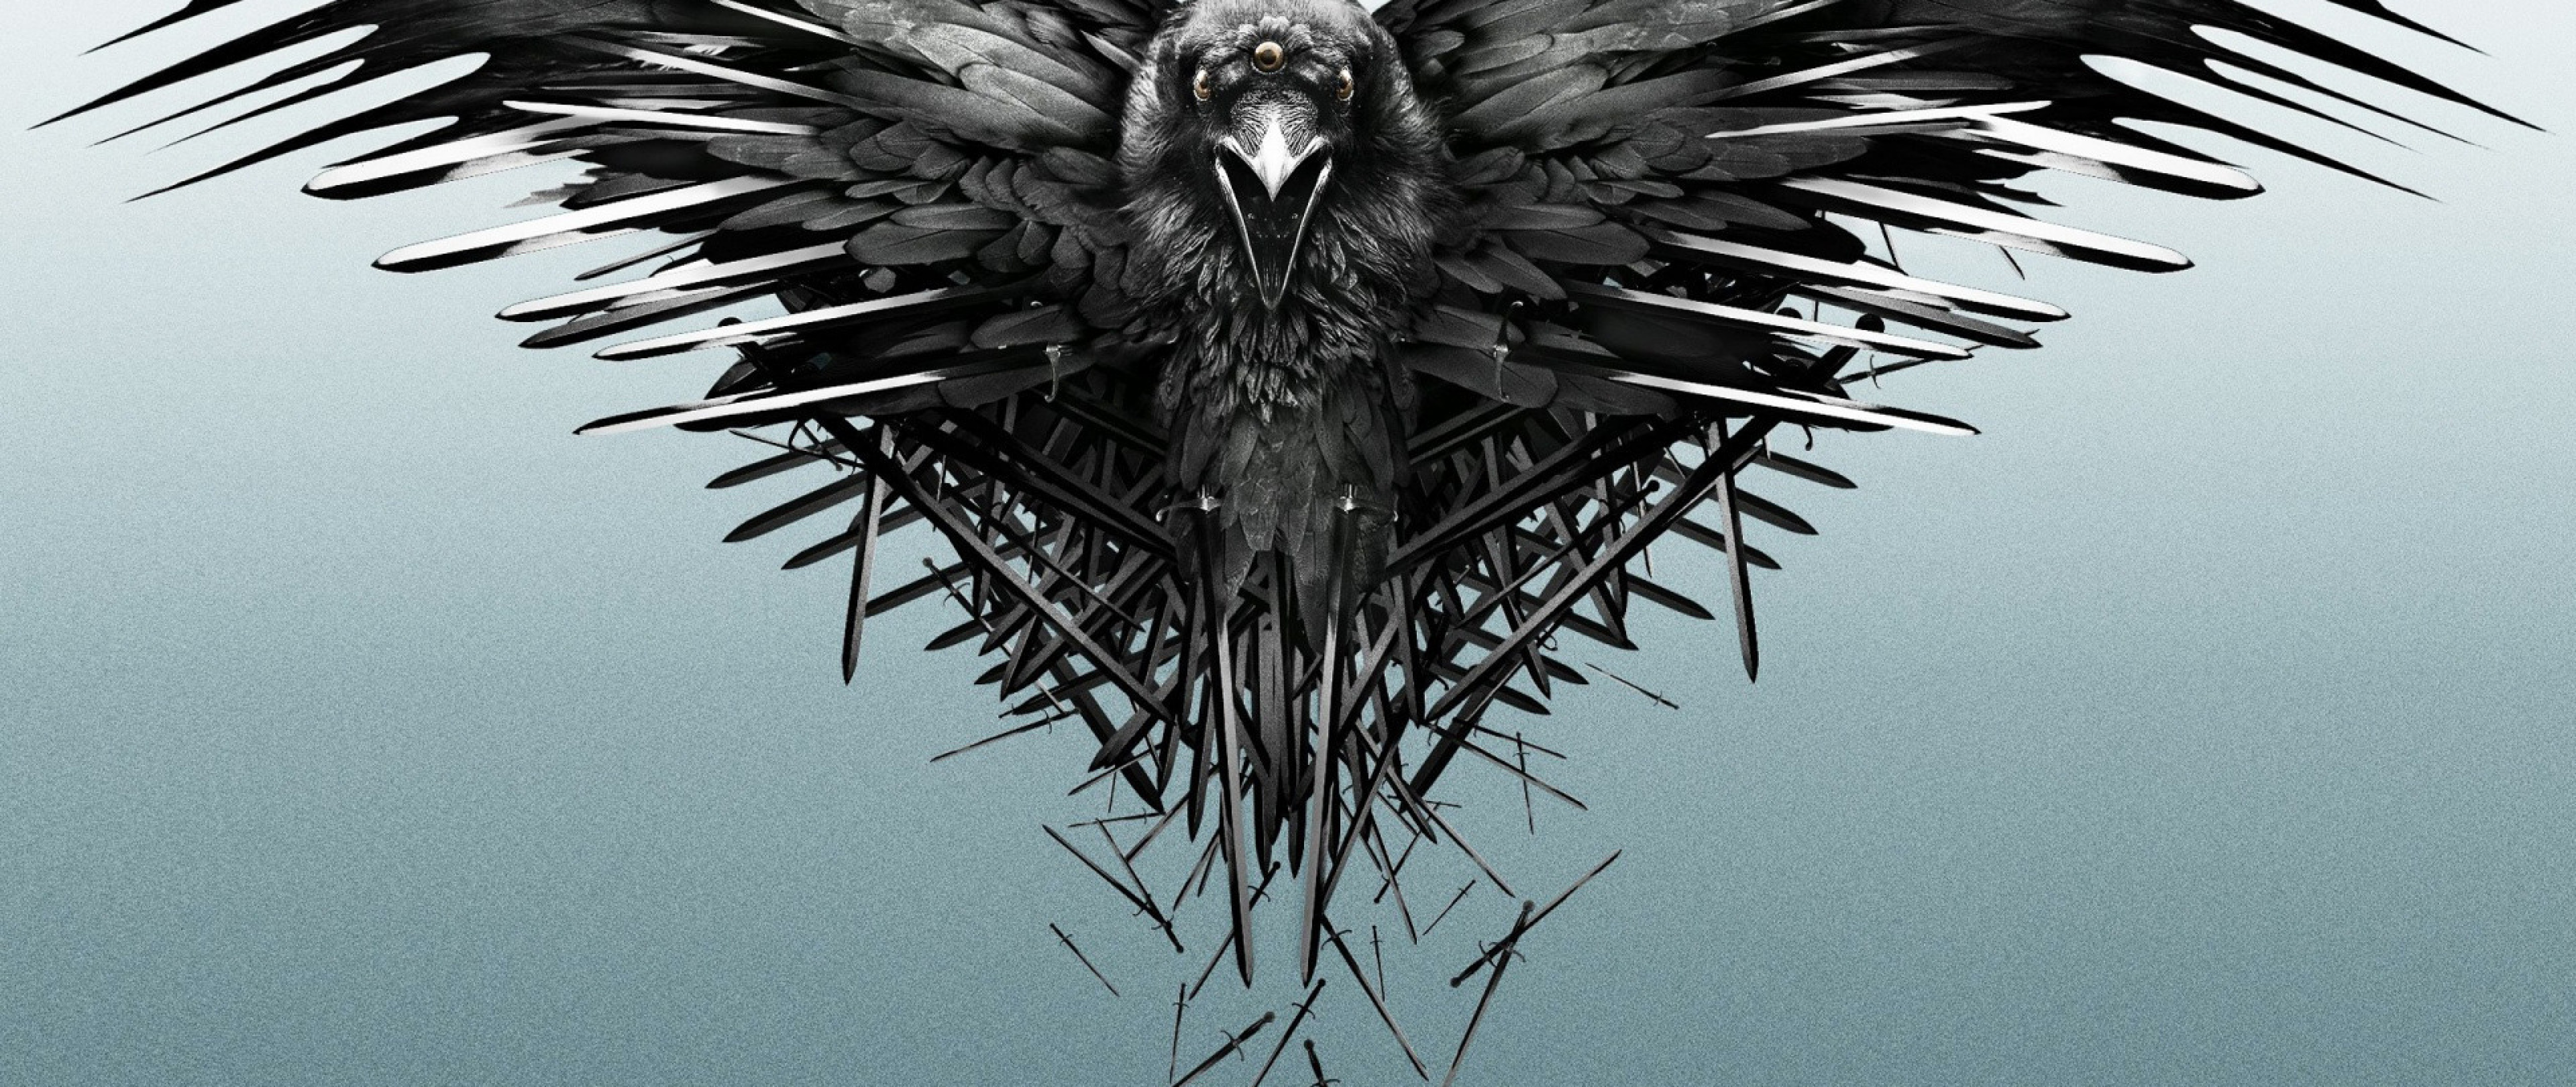 Free Download Game Of Thrones Wallpaper For Desktop And